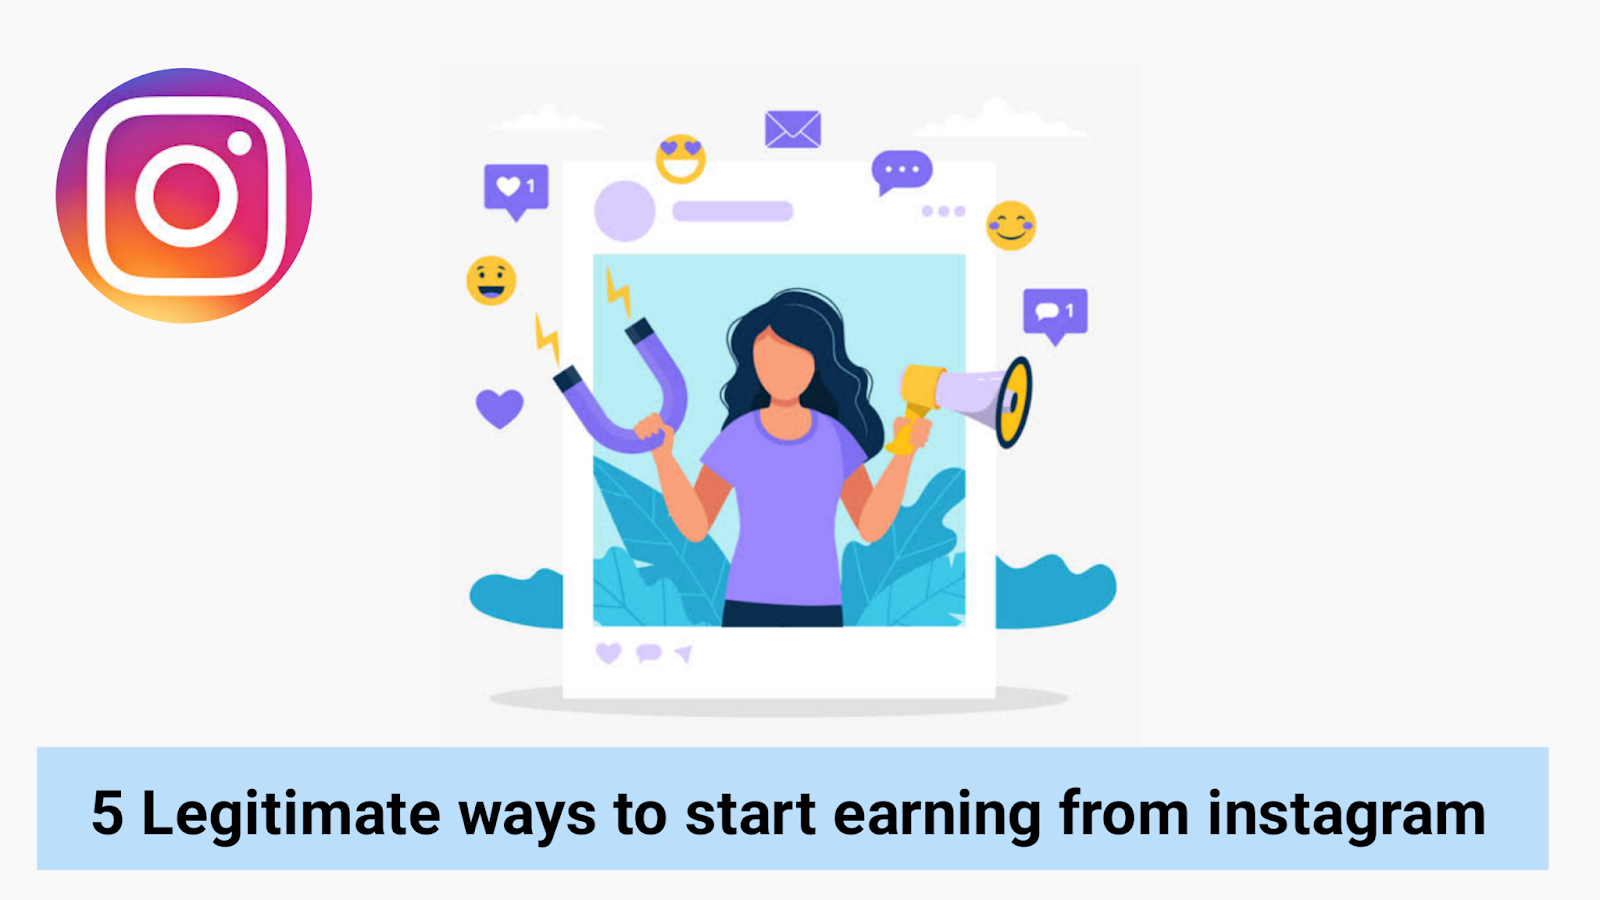 how to earn money from instagram in india how to make money on instagram with clickbank how to make money on instagram without followers How many followers do you need to make money on Instagram? Do Instagram users get paid?